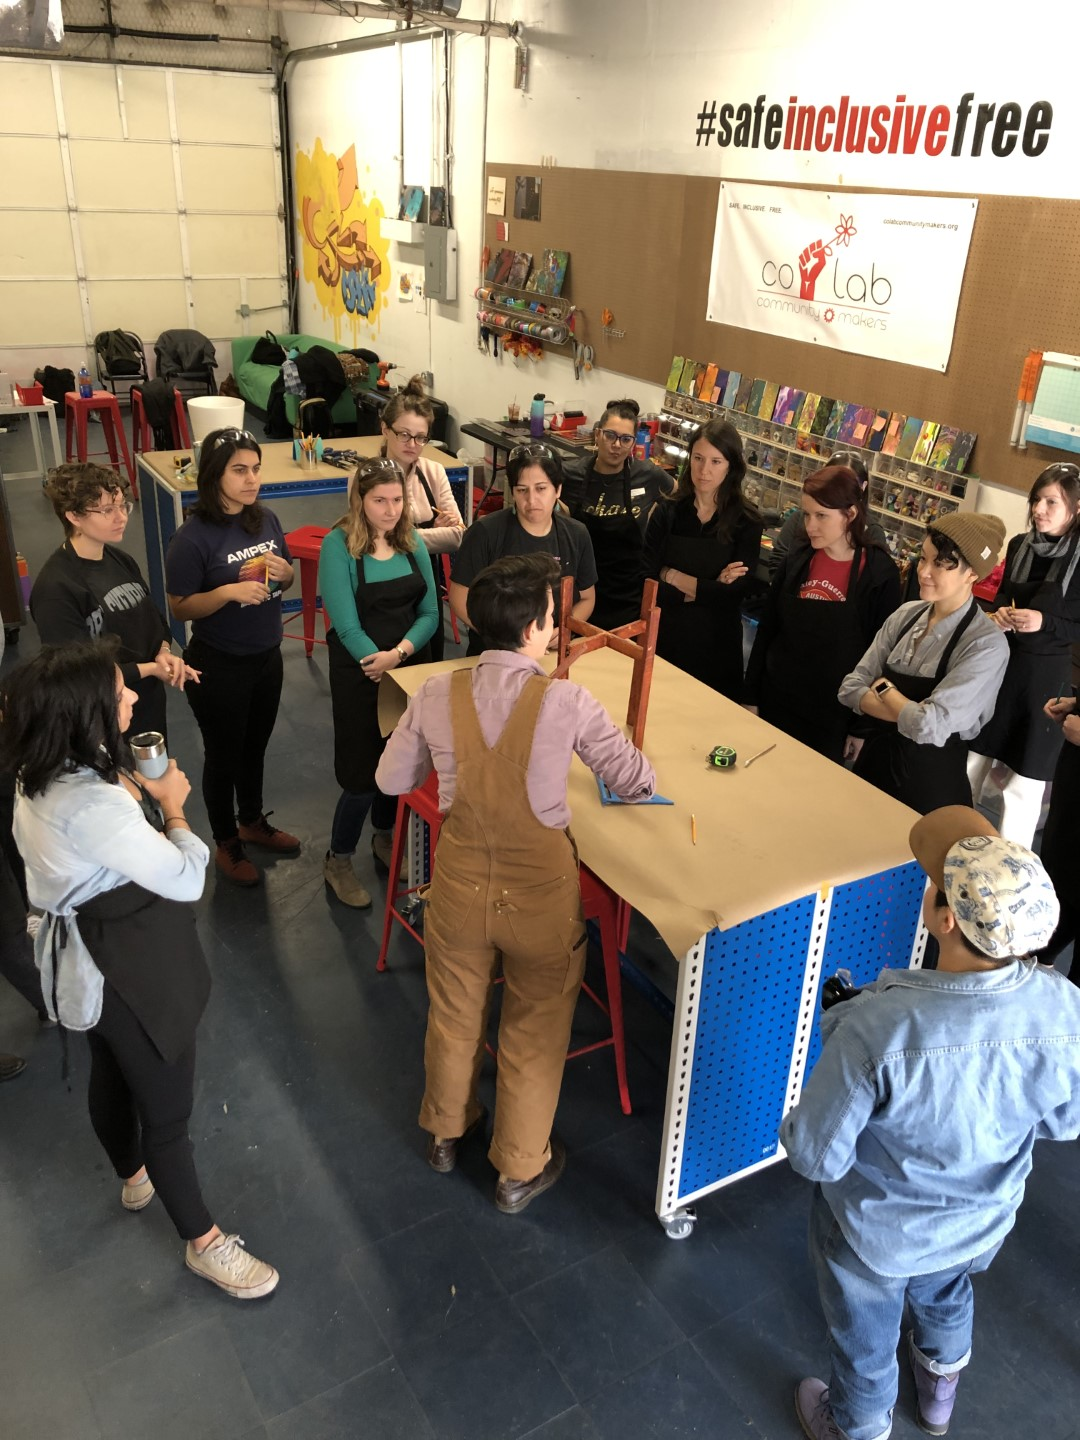 Join Us On November 21 For a LIVE Tour Of Co Lab Community Makerspace